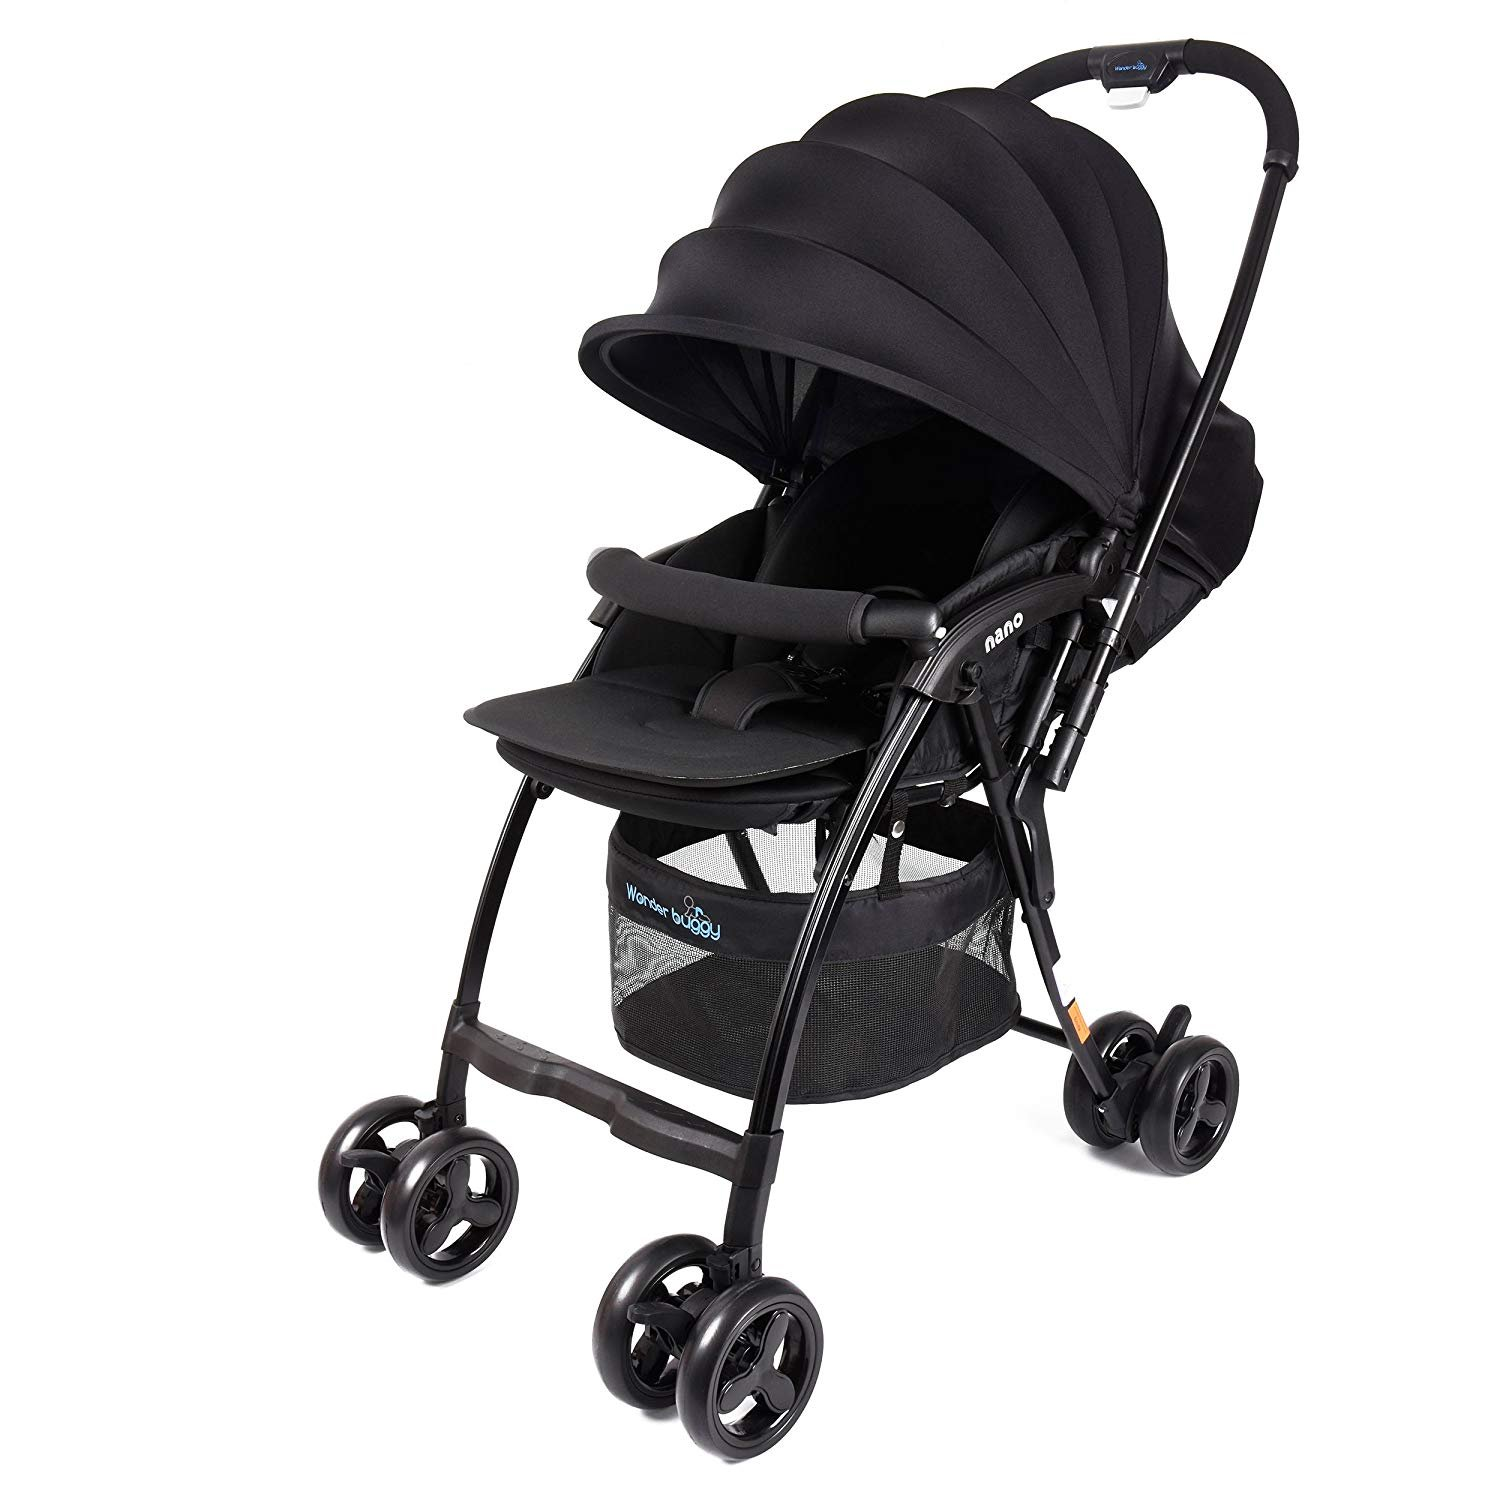 WonderBuggy Nano Lightweight Baby Stroller with Reversible Handle, Easy Foldable and Collapsible (Black)